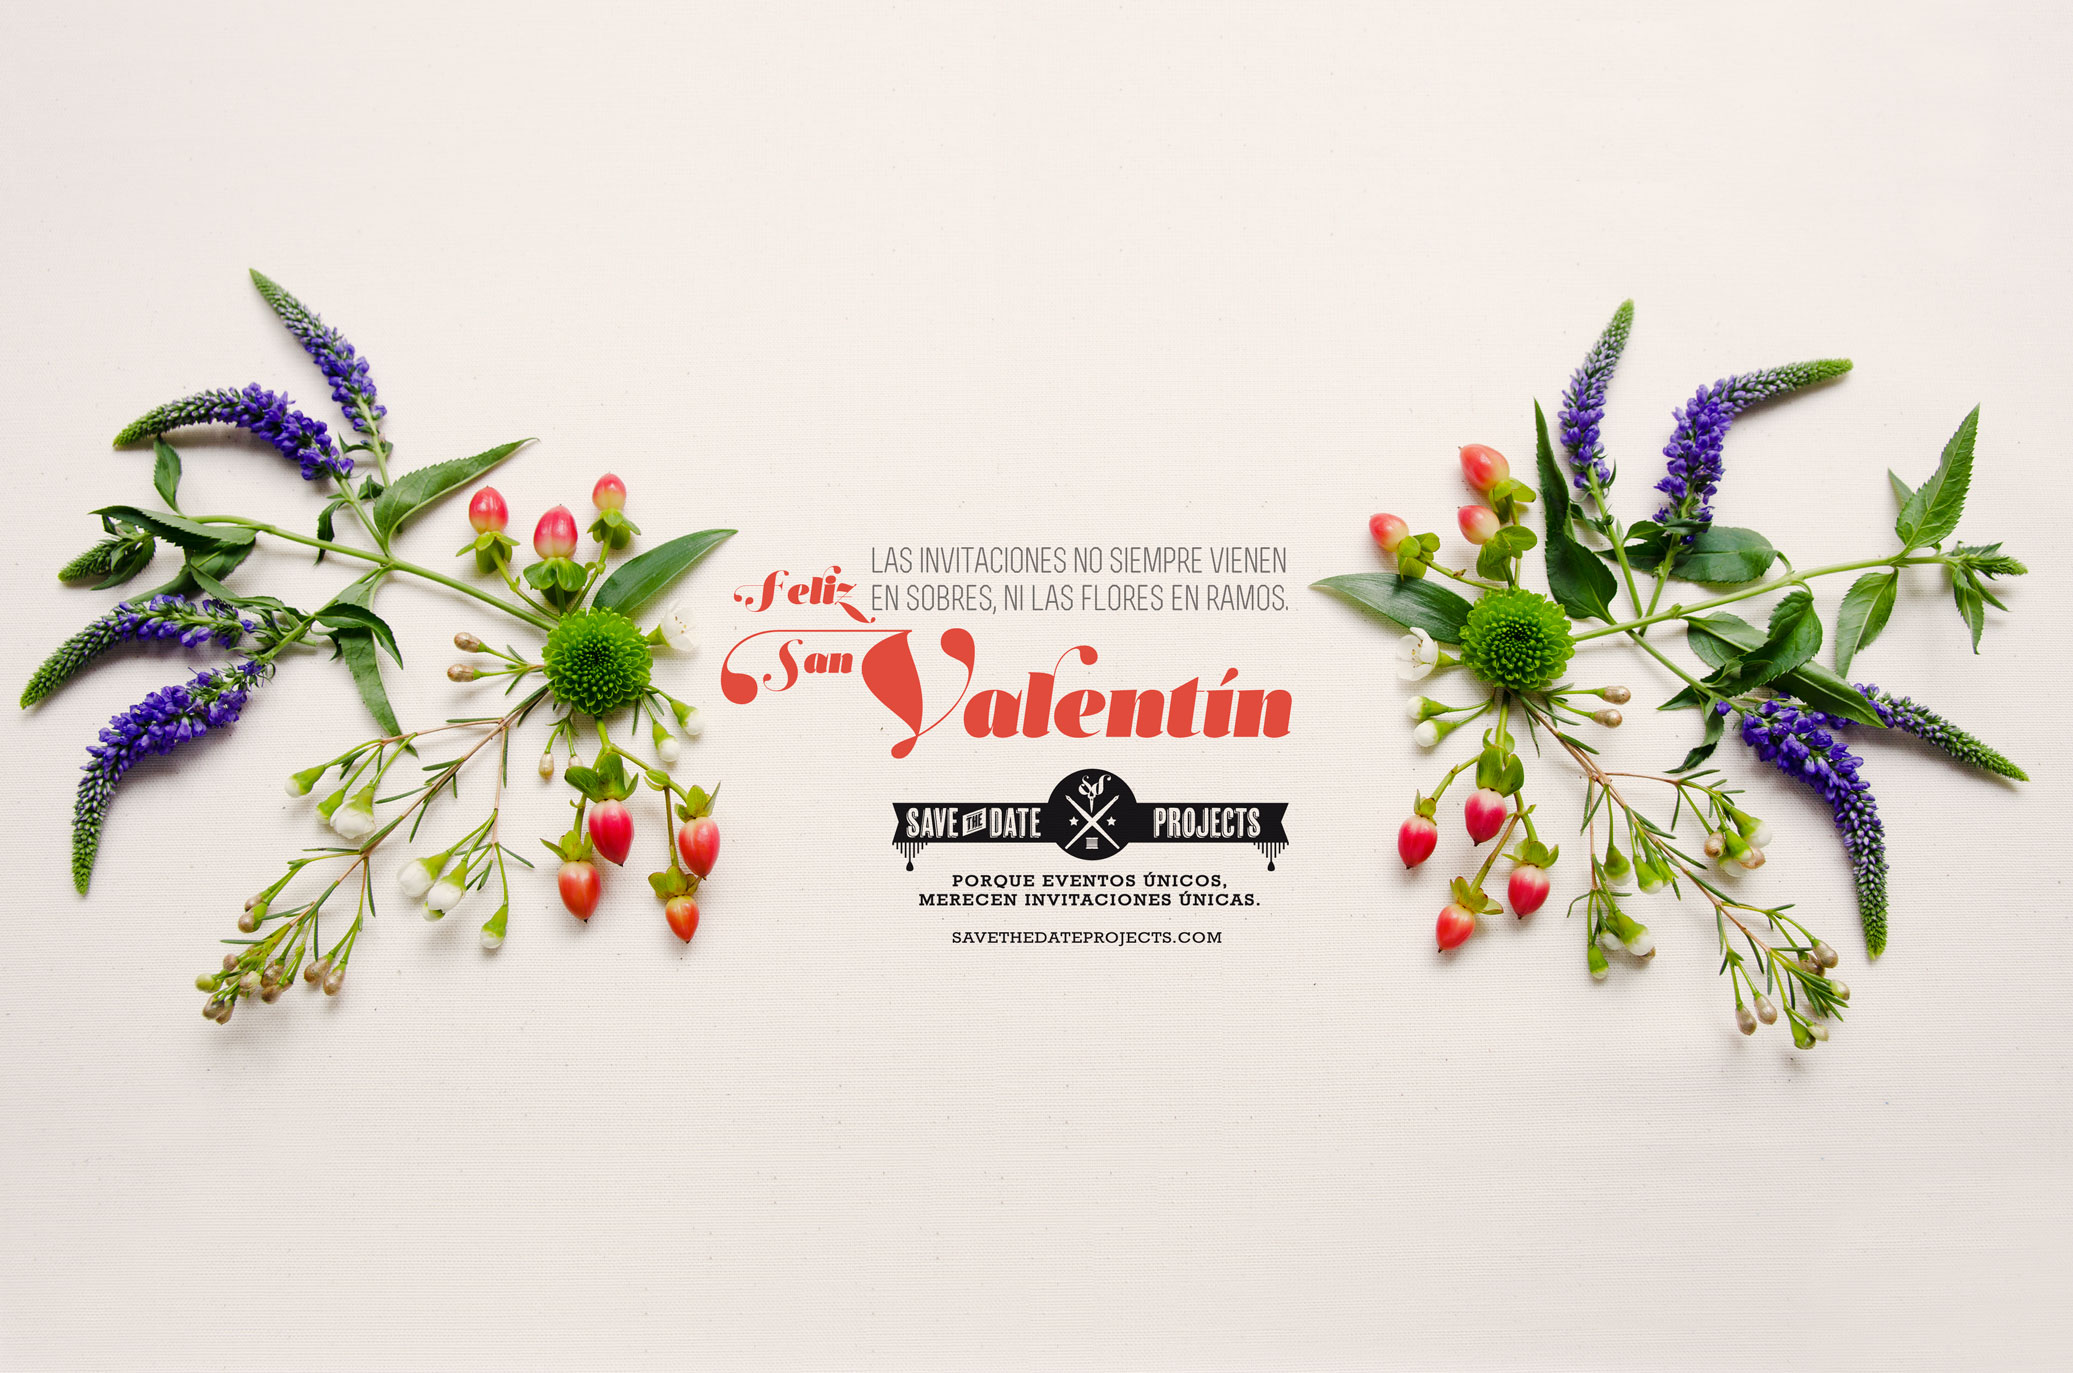 Invitaciones_personalizadas_a_medida_unicas_Save_the_Date_Boda_san_valentin_2_low